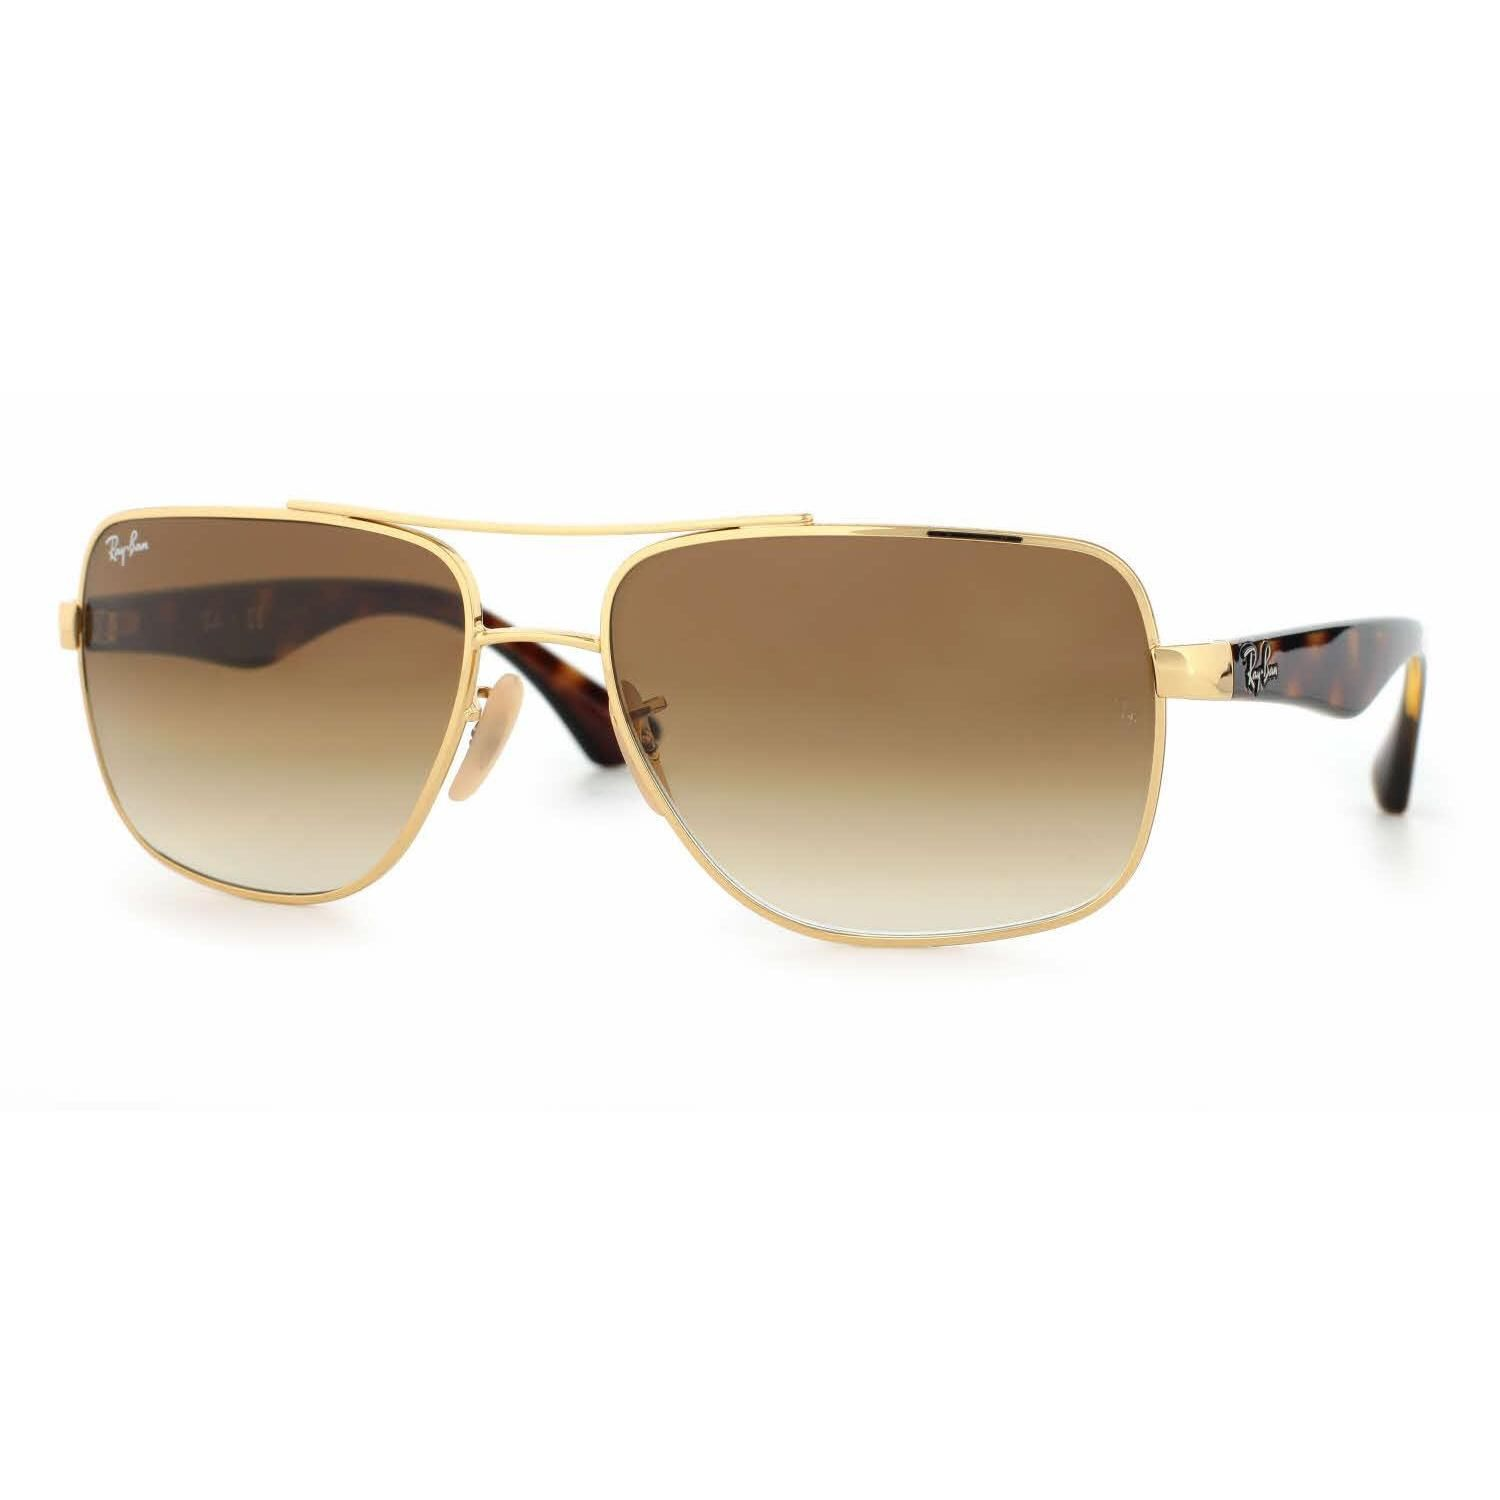 aab9575ed7f Ray Ban Mens RB3483 001 51 Gold Metal Square Sunglasses - Brown ...